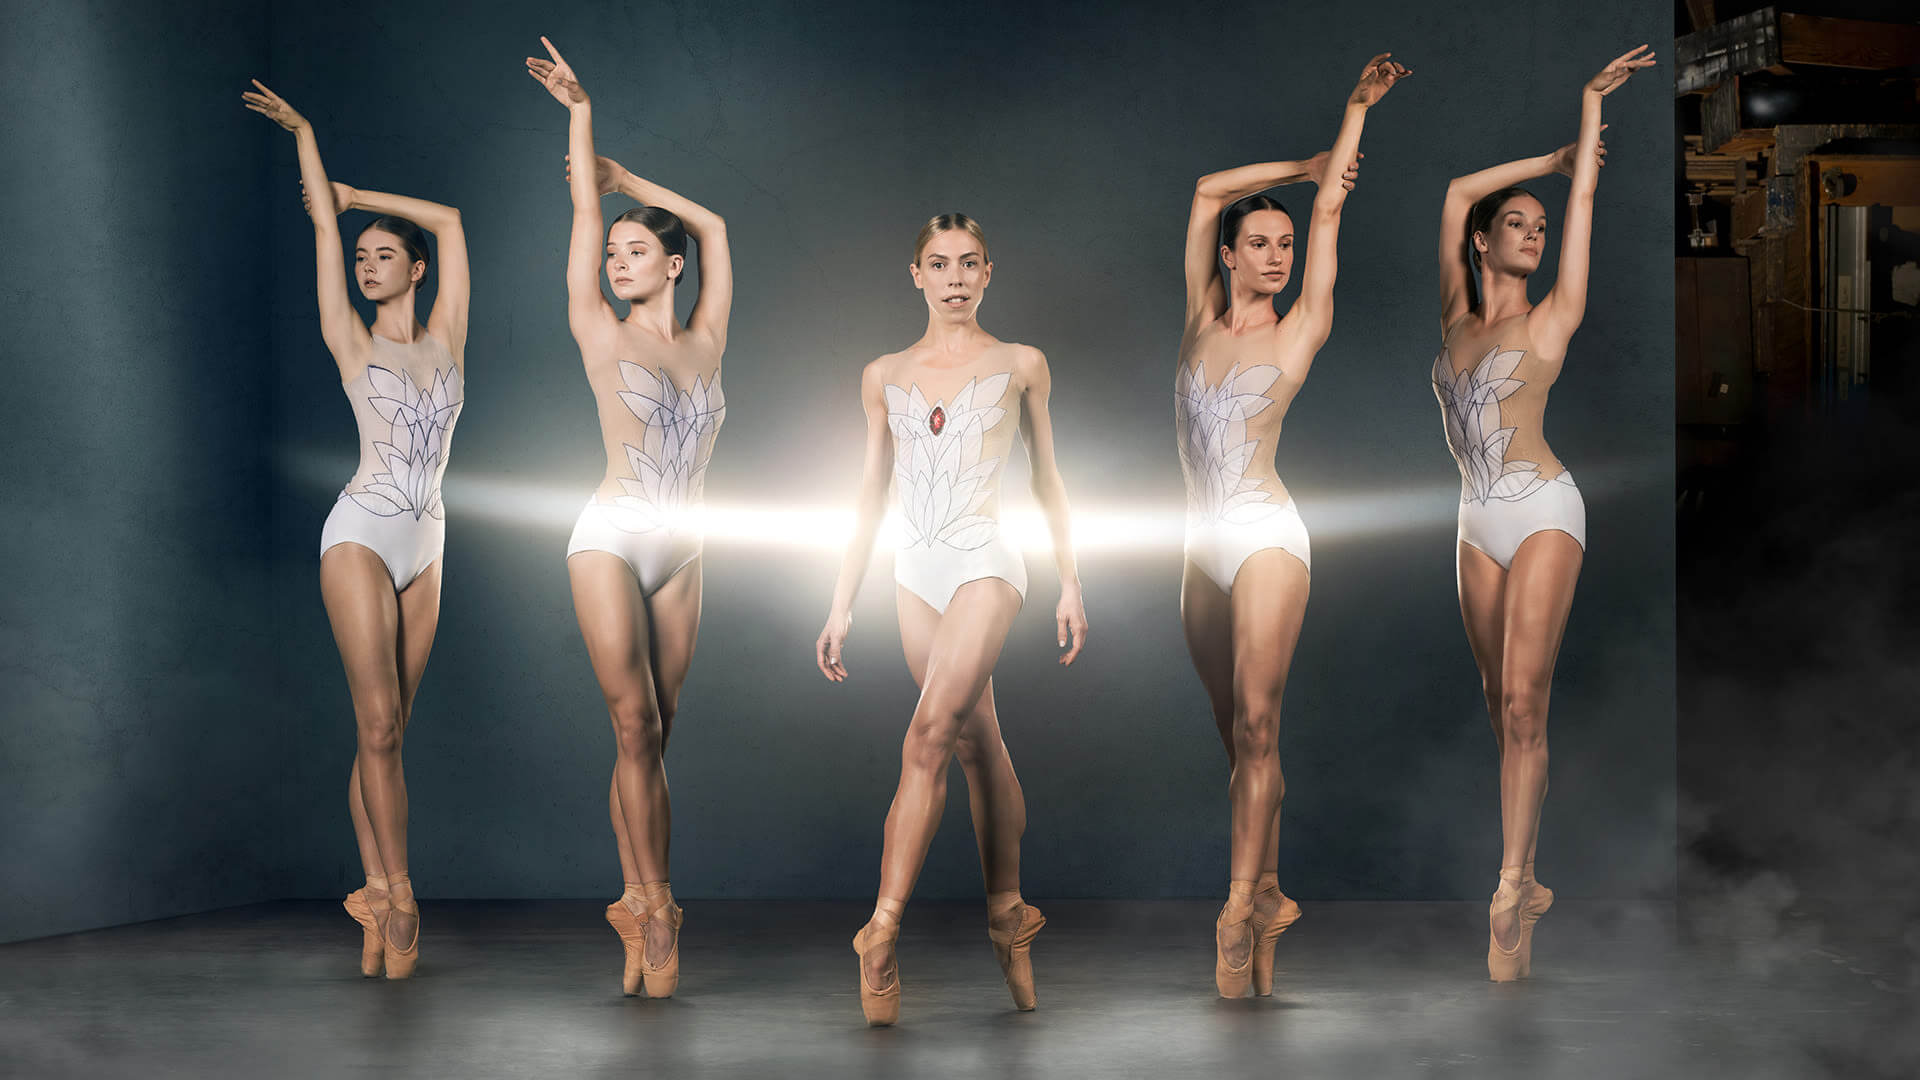 Five ballet dancers in a dance pose with the centre dancer looking to camera with a beam of light across them